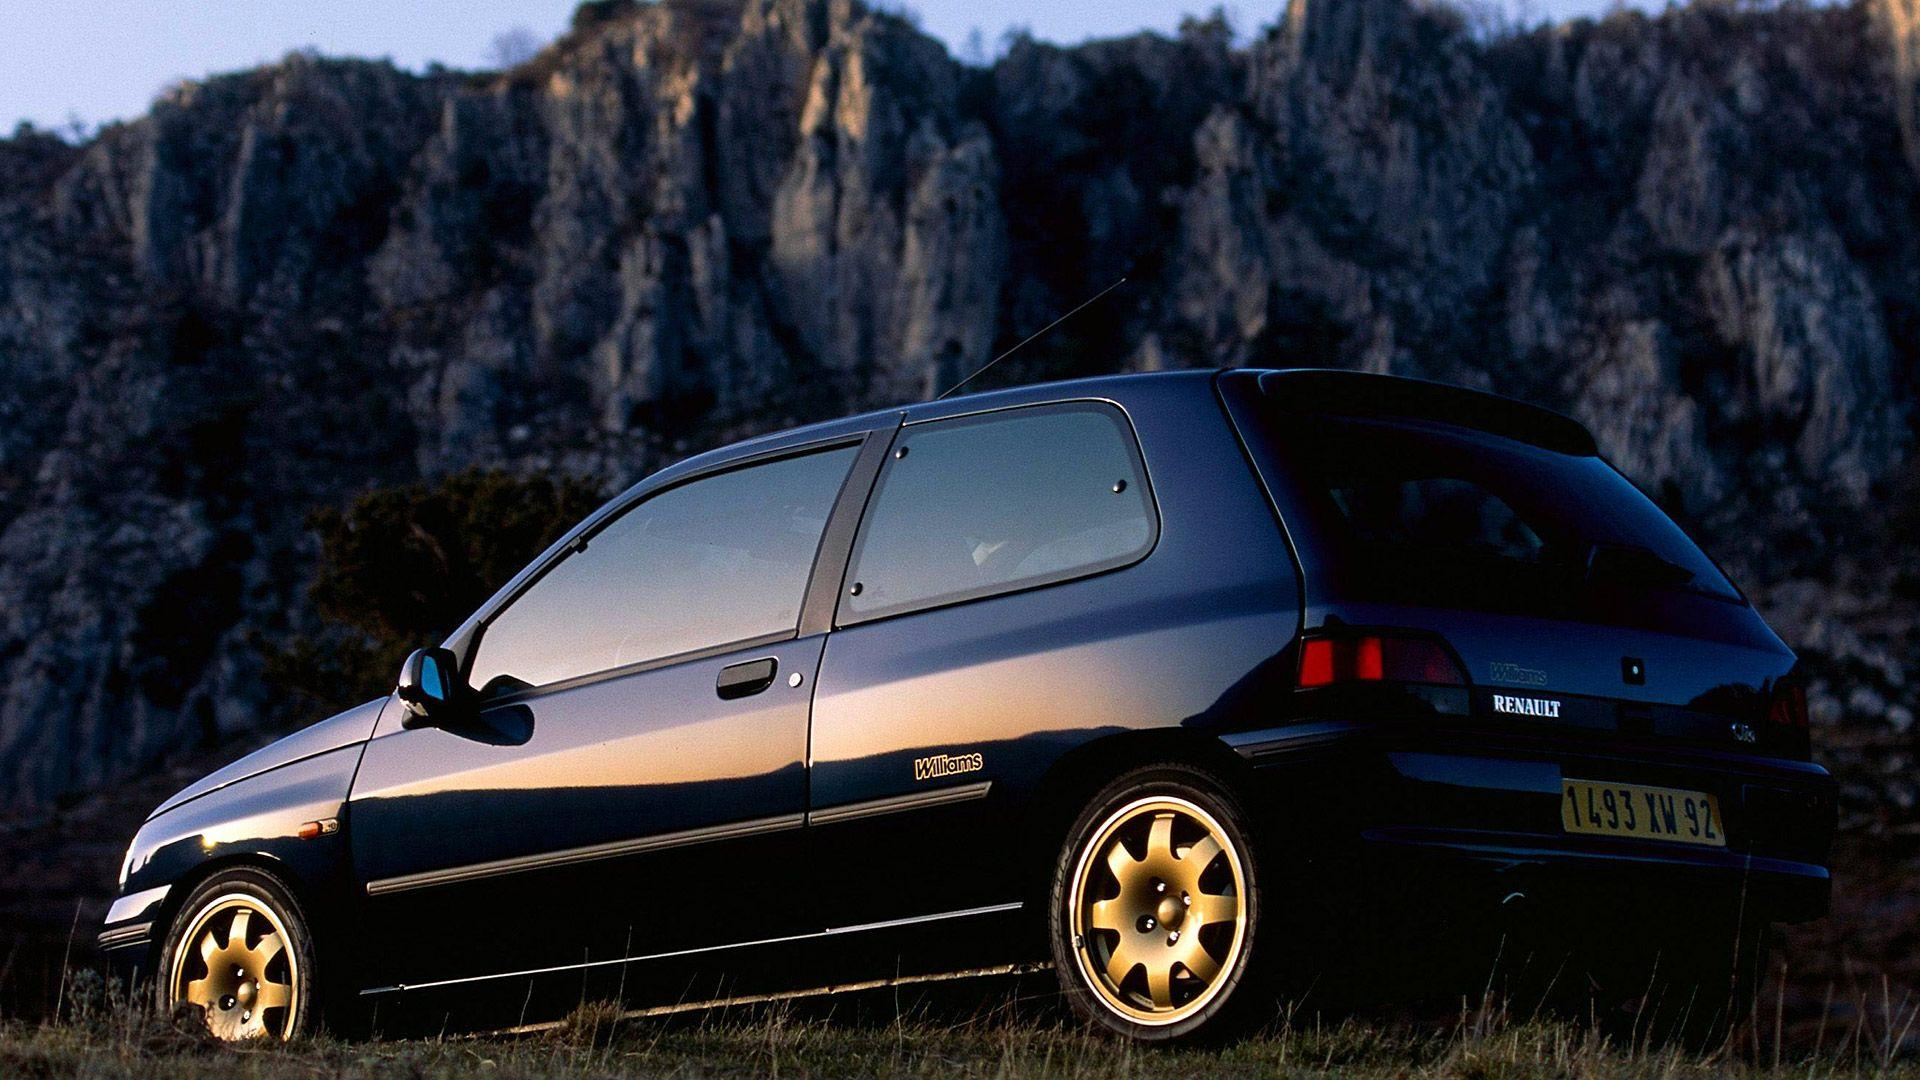 1993 Renault Clio Williams Wallpapers & HD Image